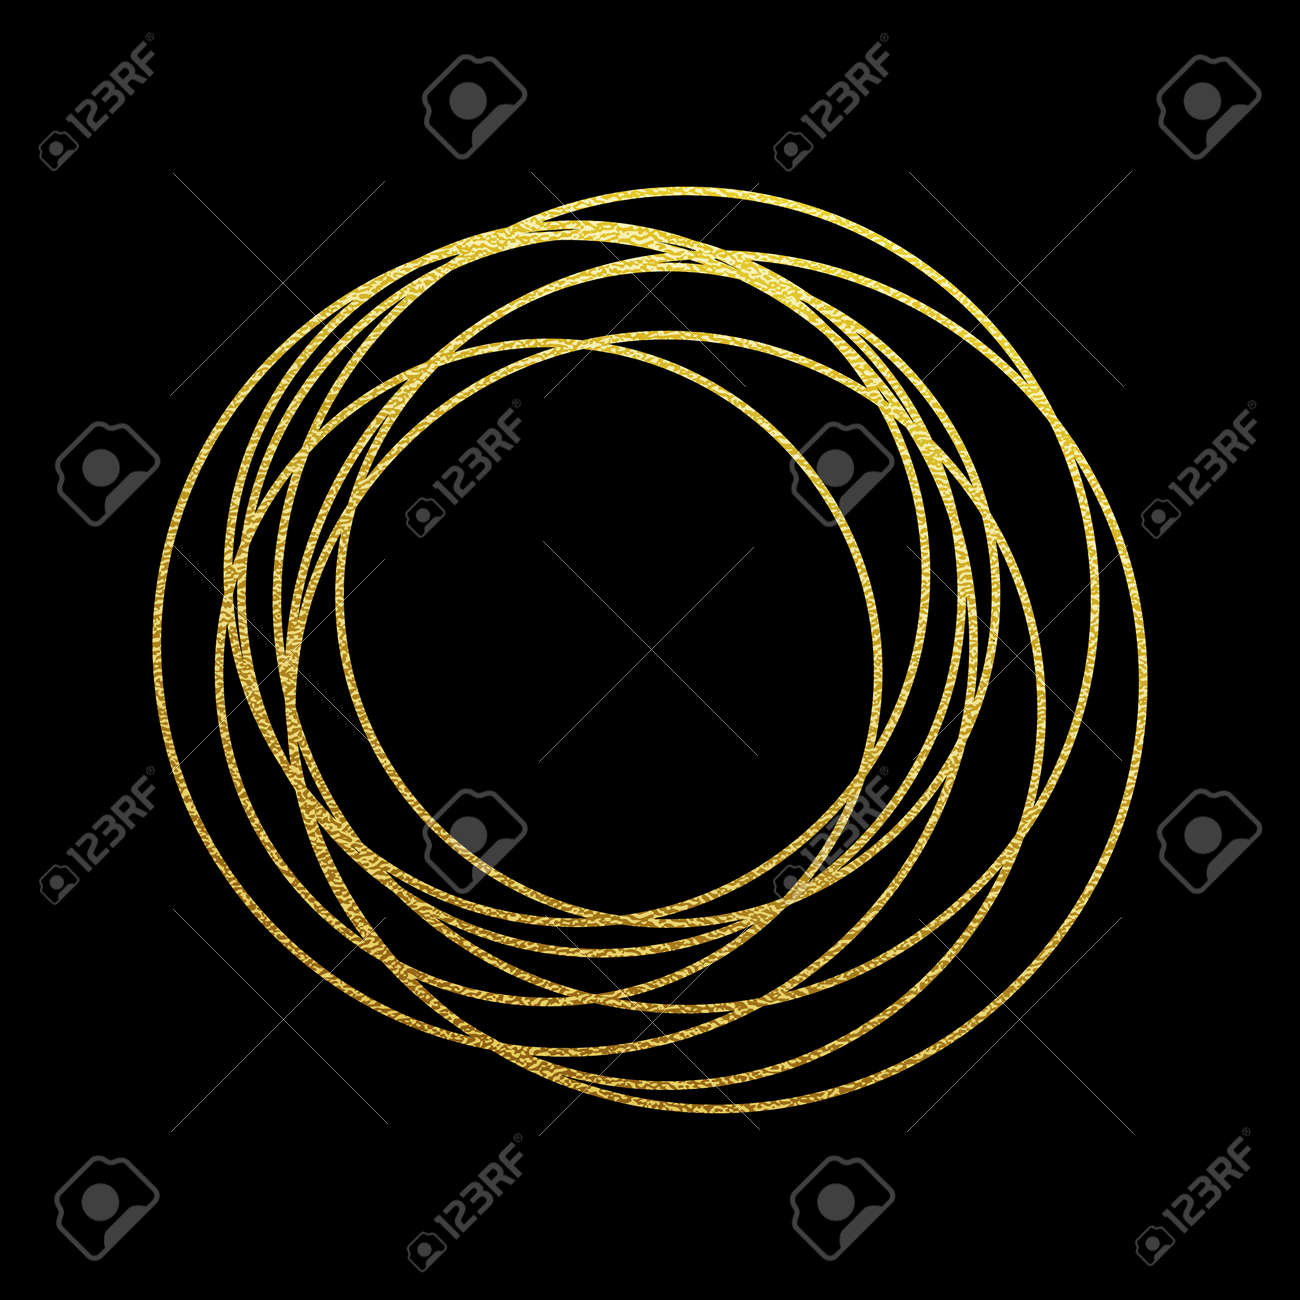 Abstract golden circles and rings of gold foil gilding texture. Sparkling twirl design elements for interior decoration, festive background for New Year and Chritmas cards ornaments - 66973663